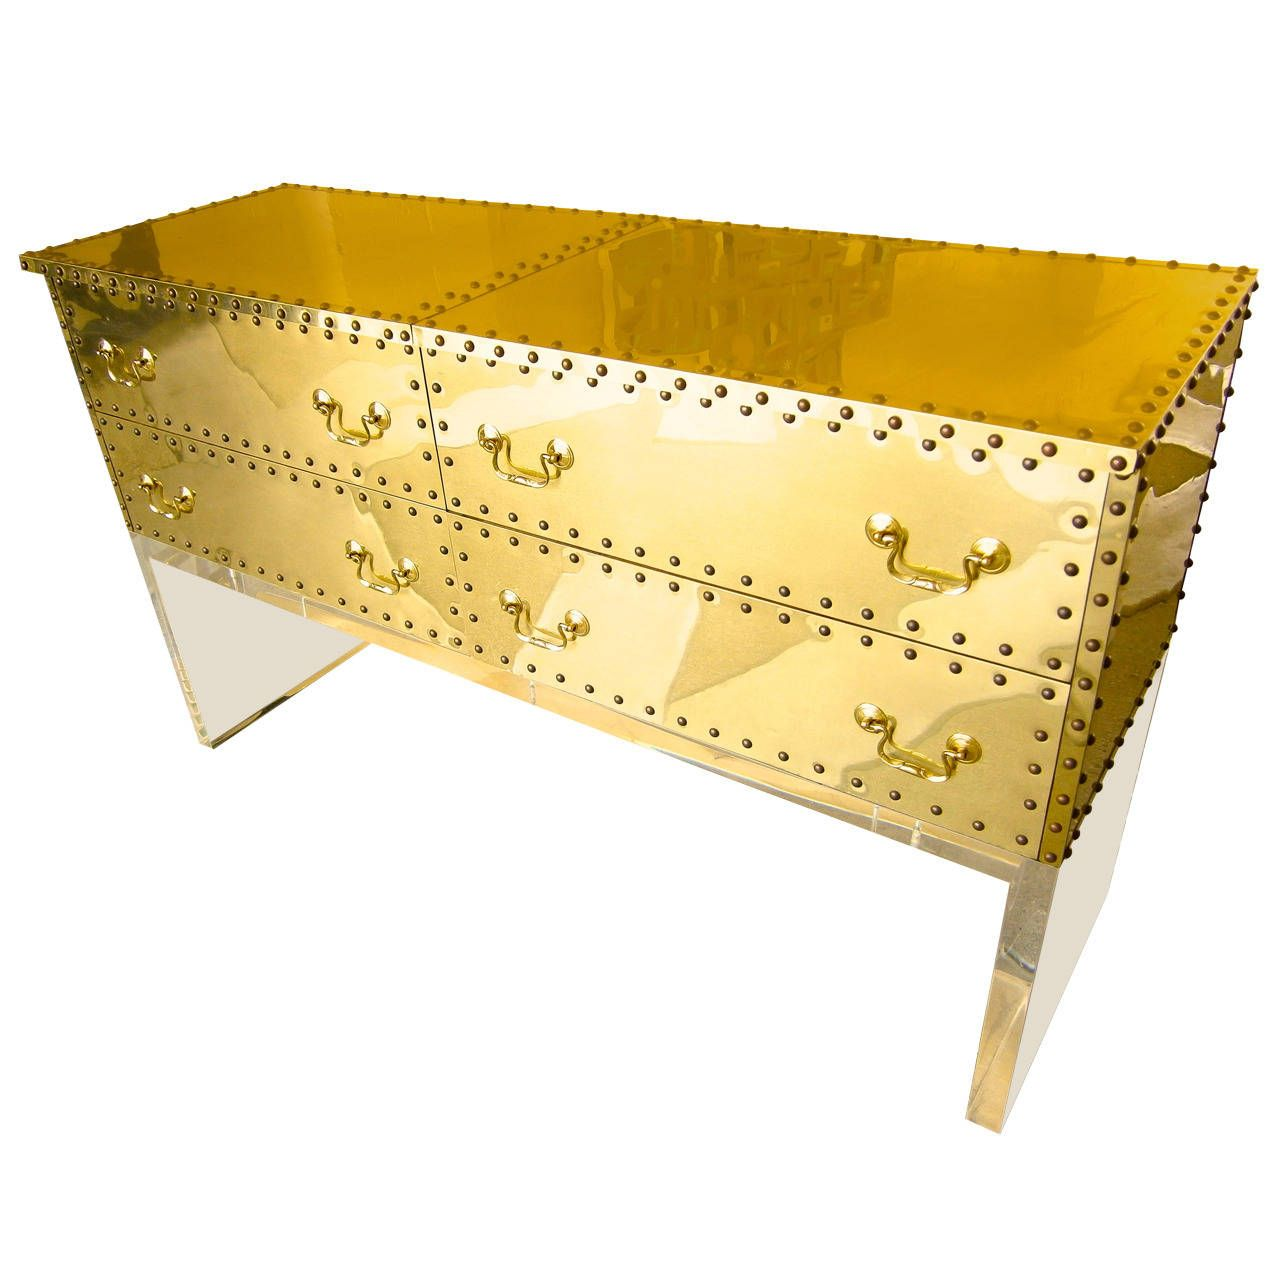 Brass-Clad Long Chest on Lucite Base  Attributed to Sarried  C 1980s   From a unique collection of antique and modern commodes and chests of drawers at https://www.1stdibs.com/furniture/storage-case-pieces/commodes-chests-of-drawers/